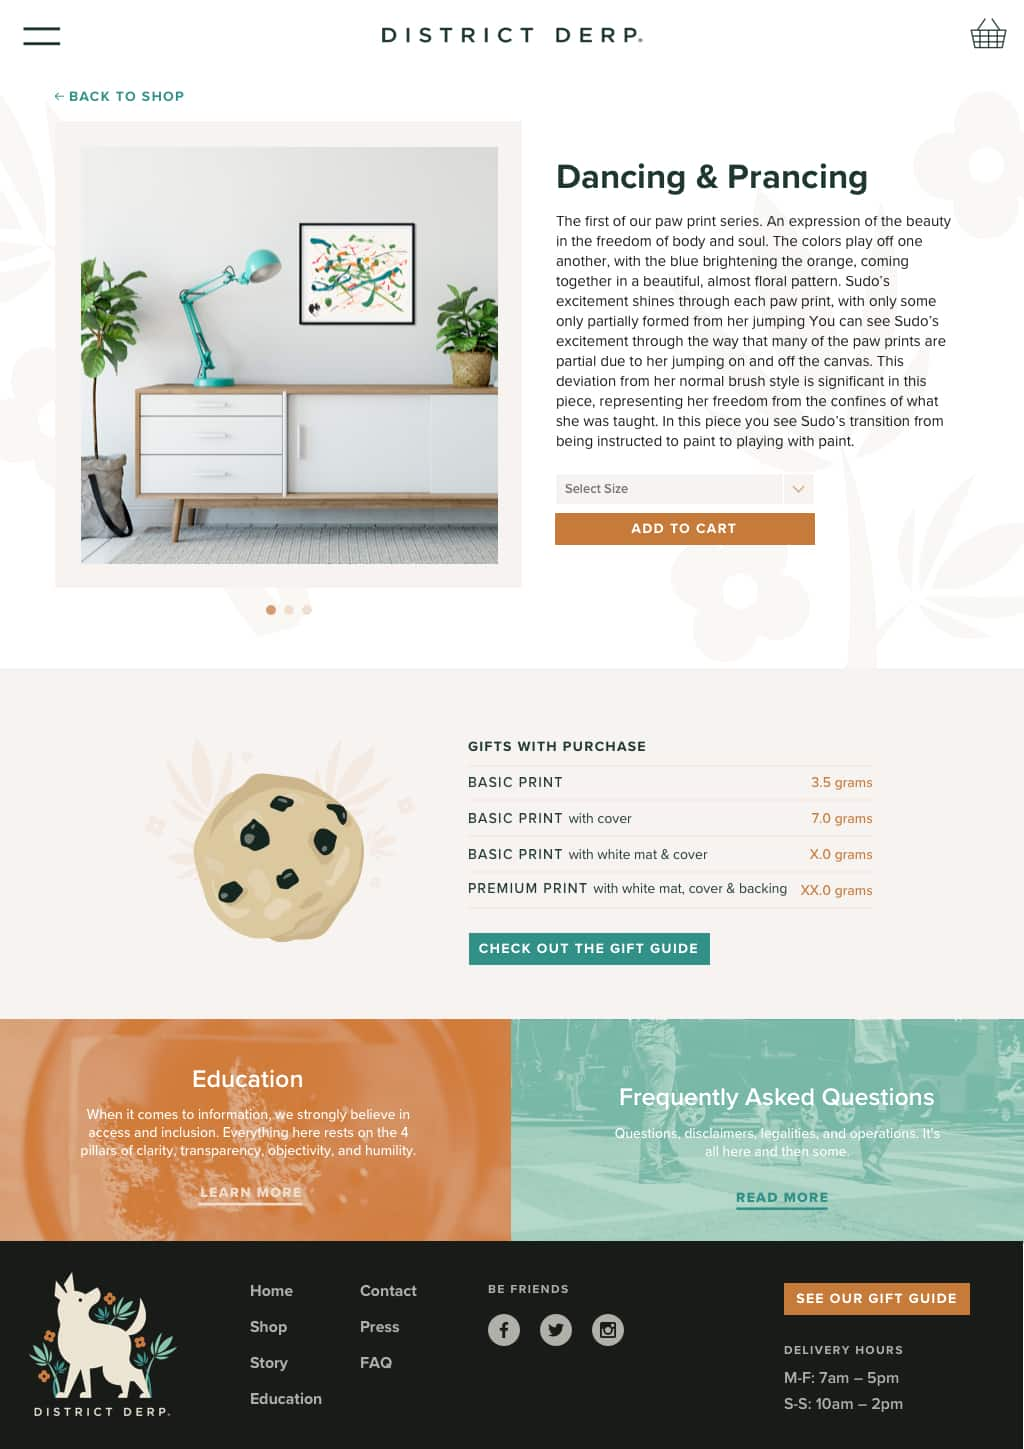 Product page design for eCommerce company, District Derp